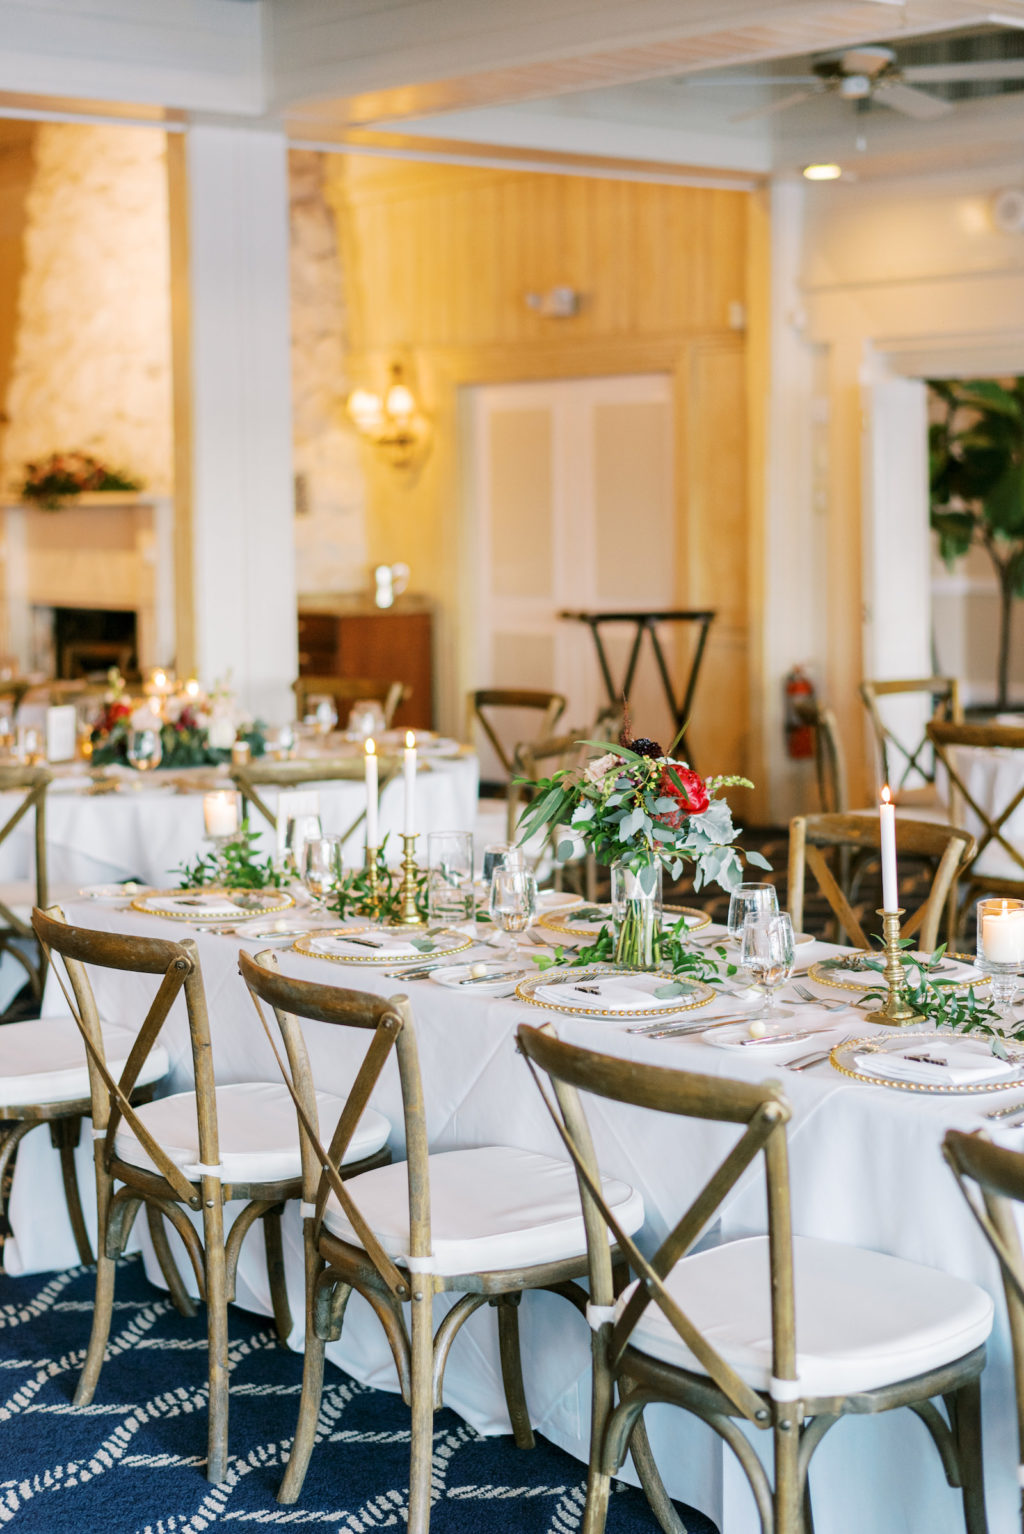 Rustic Romantic Wedding Reception Decor, Long Feasting Table with White Linen, Wooden Cross Back Chairs, Low Greenery and Red Floral Centerpiece, Gold Candlesticks   Tampa Bay Wedding Rentals A Chair Affair   Clearwater Wedding Venue Carlouel Beach and Yacht Club